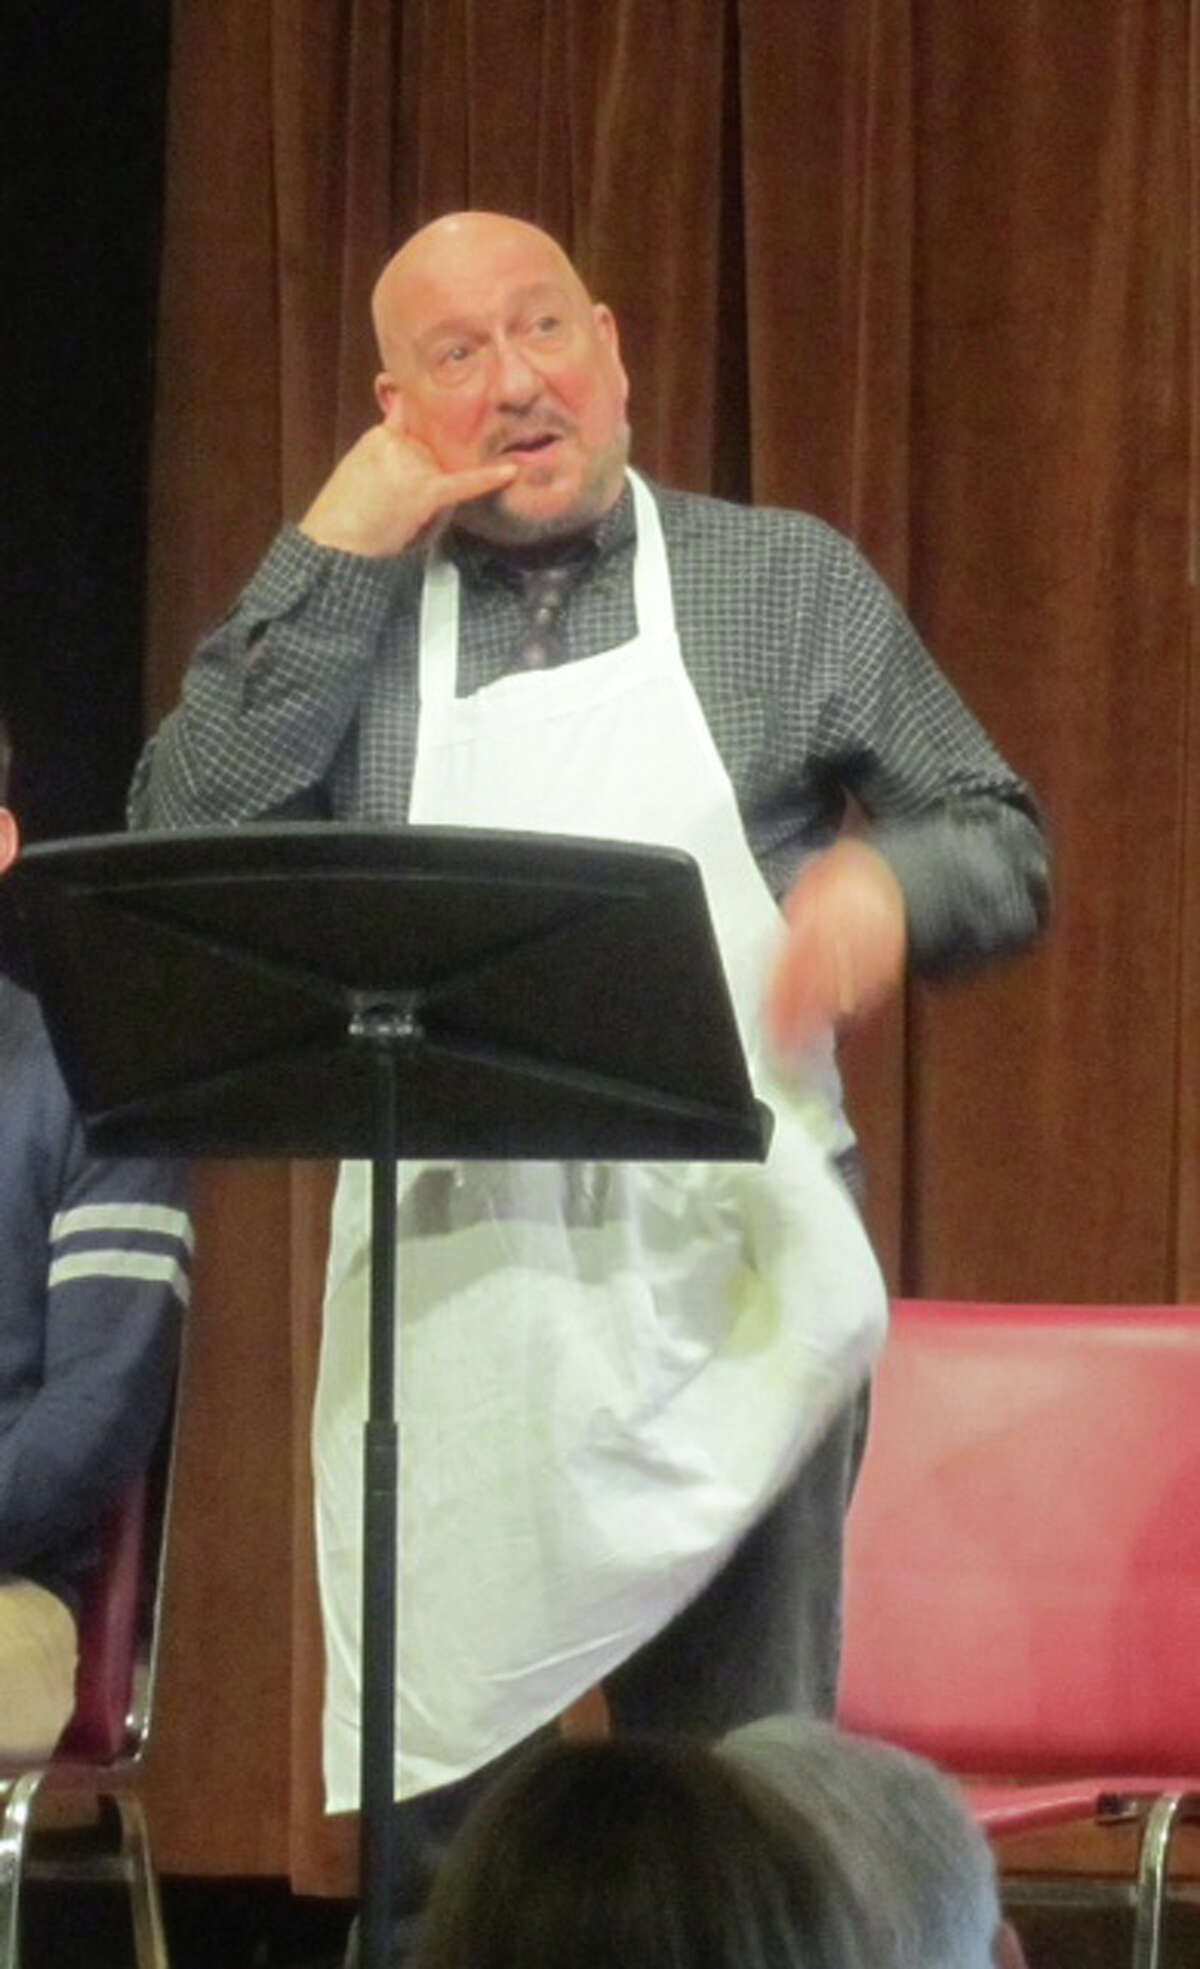 Tom Zingarelli of New Haven, Conn., is among the performers that will be featured during Play With Your Food's January 2013 productions in Westport, Fairfield and Greenwich. Get the full schedule and other information at www.jibproductions.org.